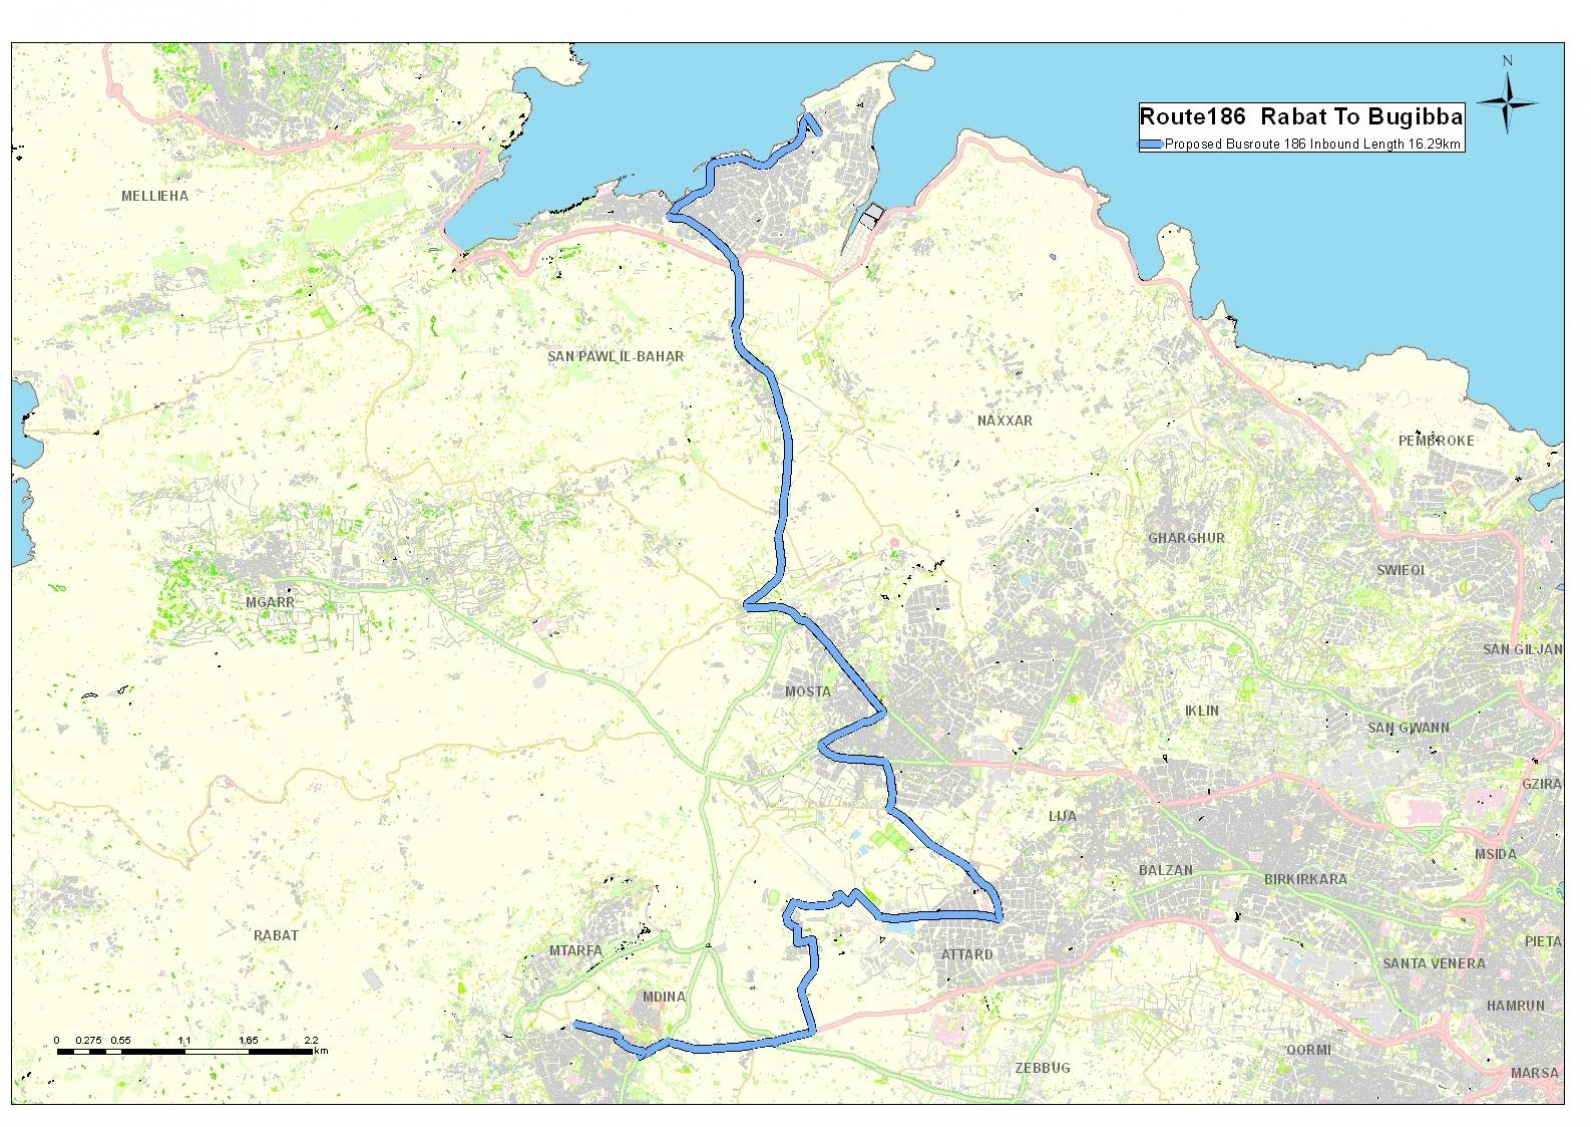 Land-current-network-routes-and-schedules-Dingli-Mtarfa-Rabat-18